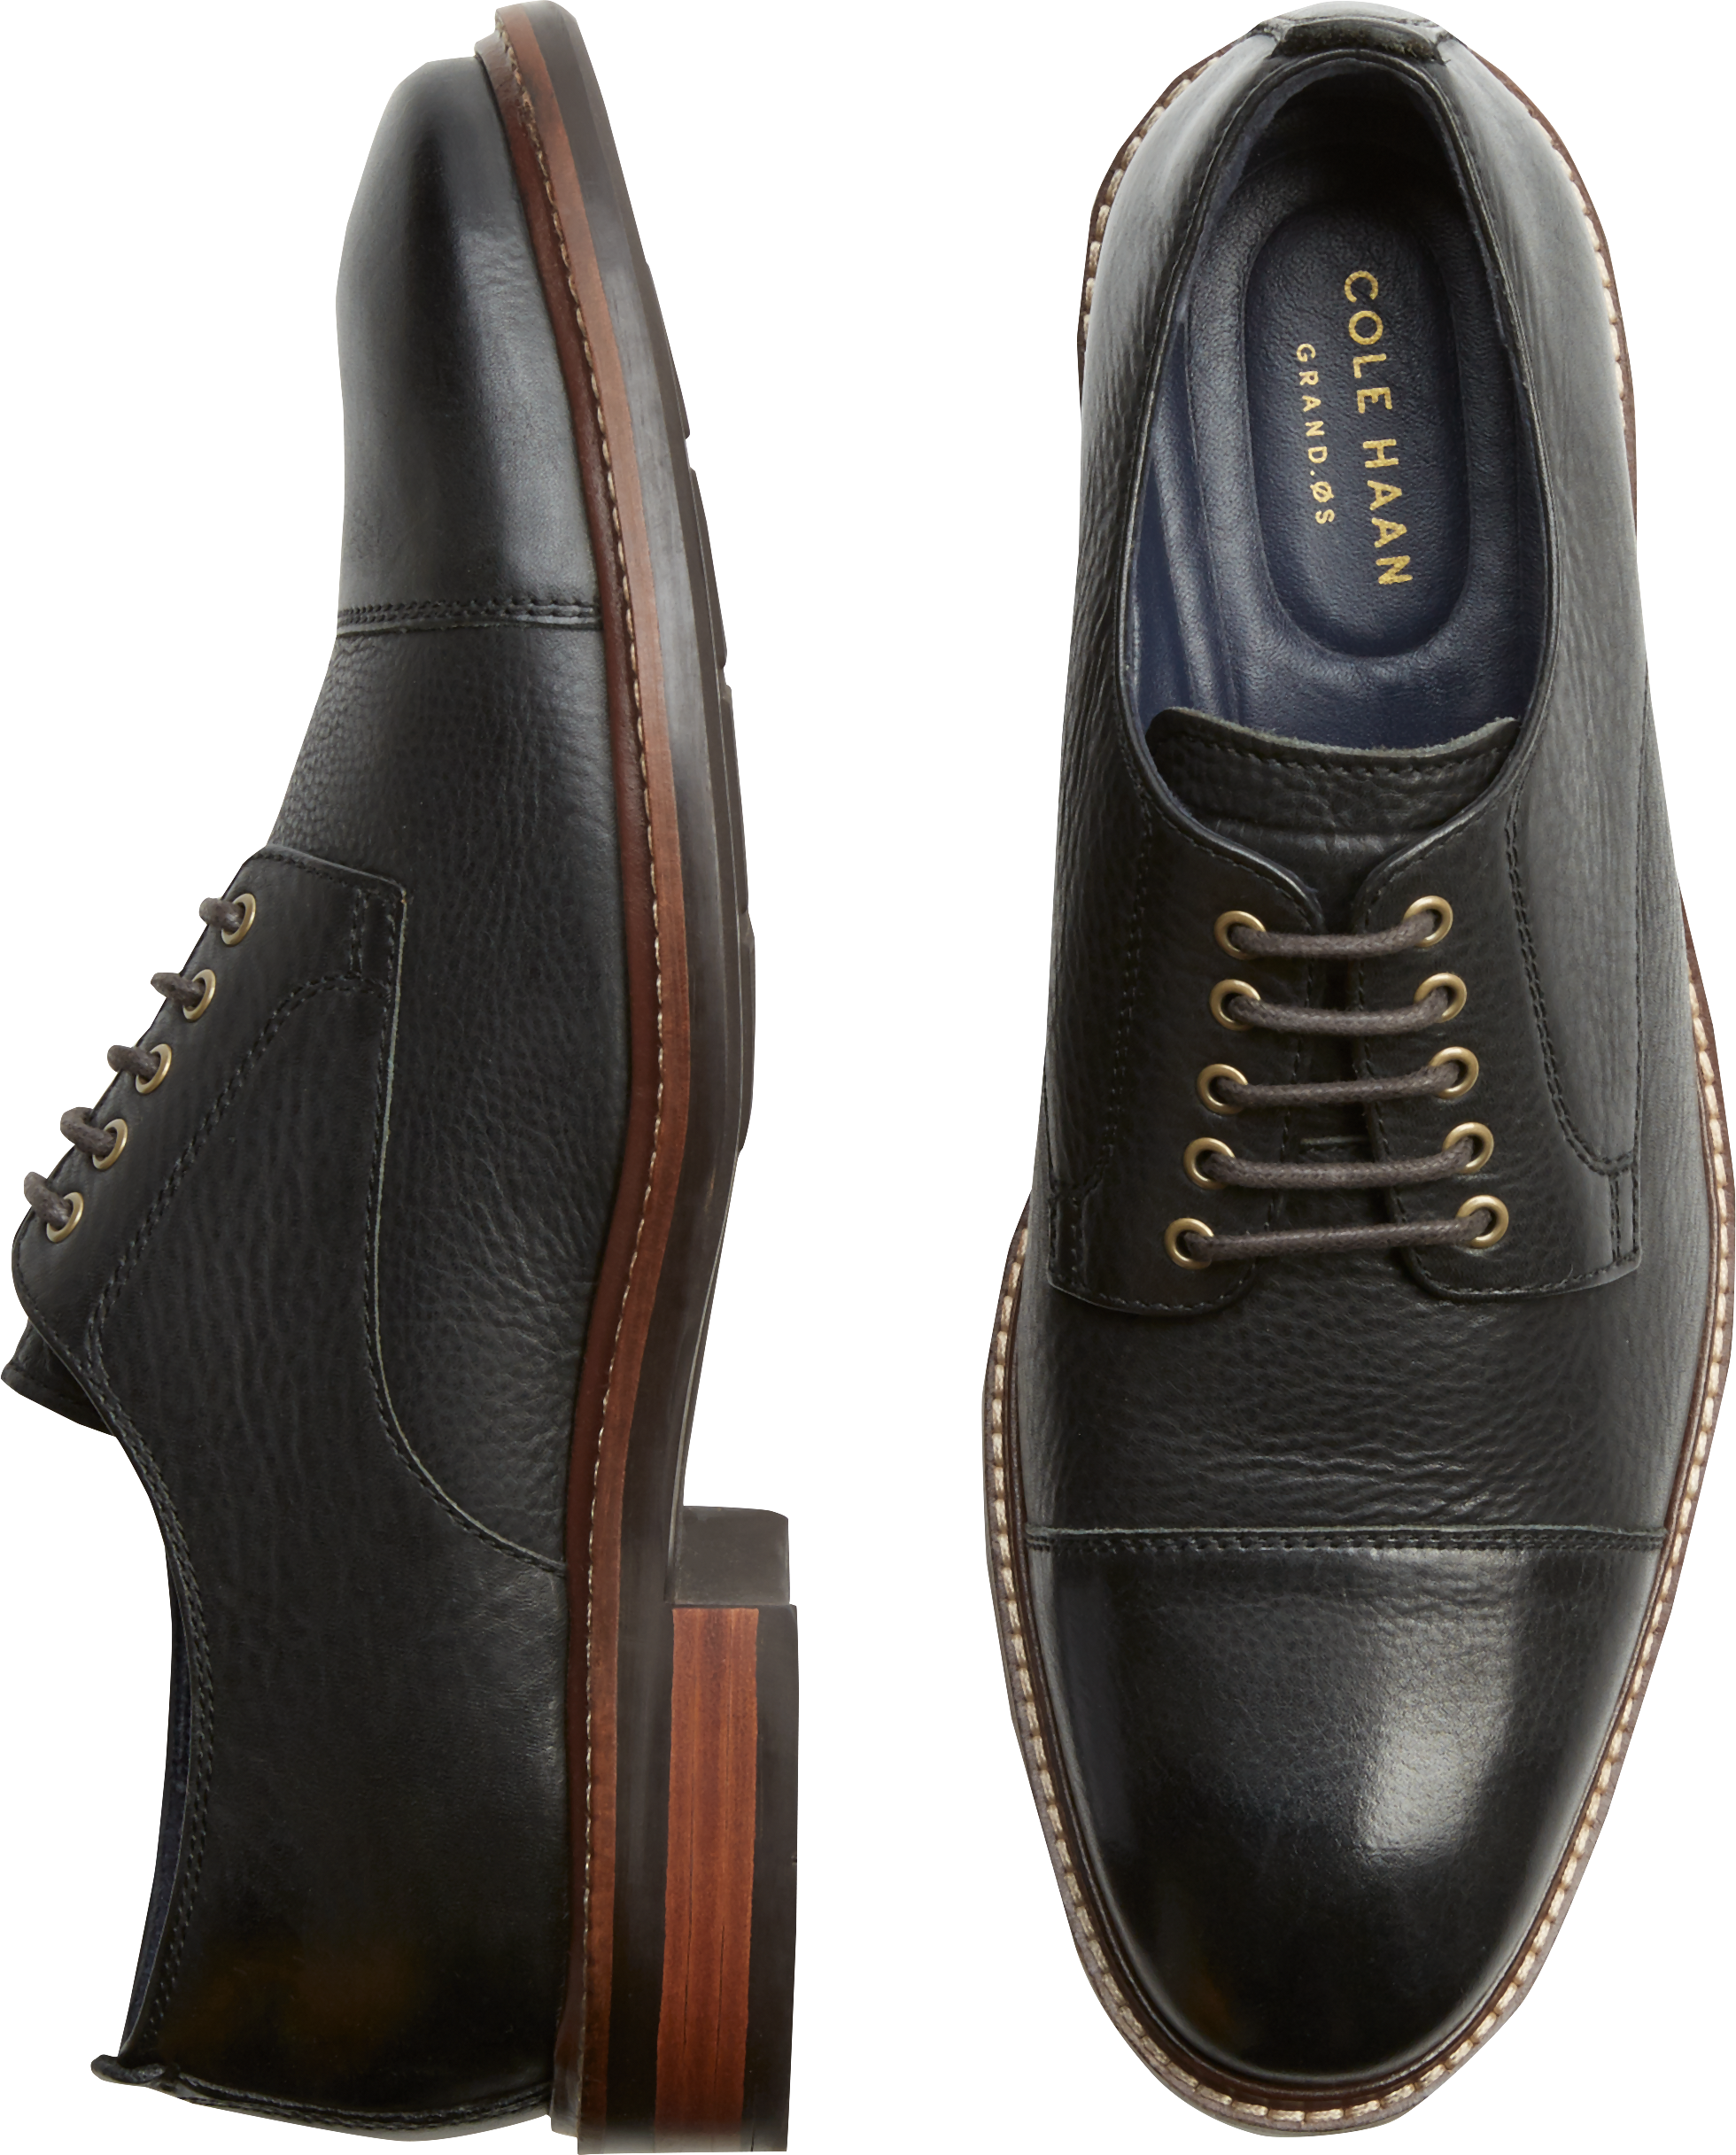 Cole Haan shoes 30